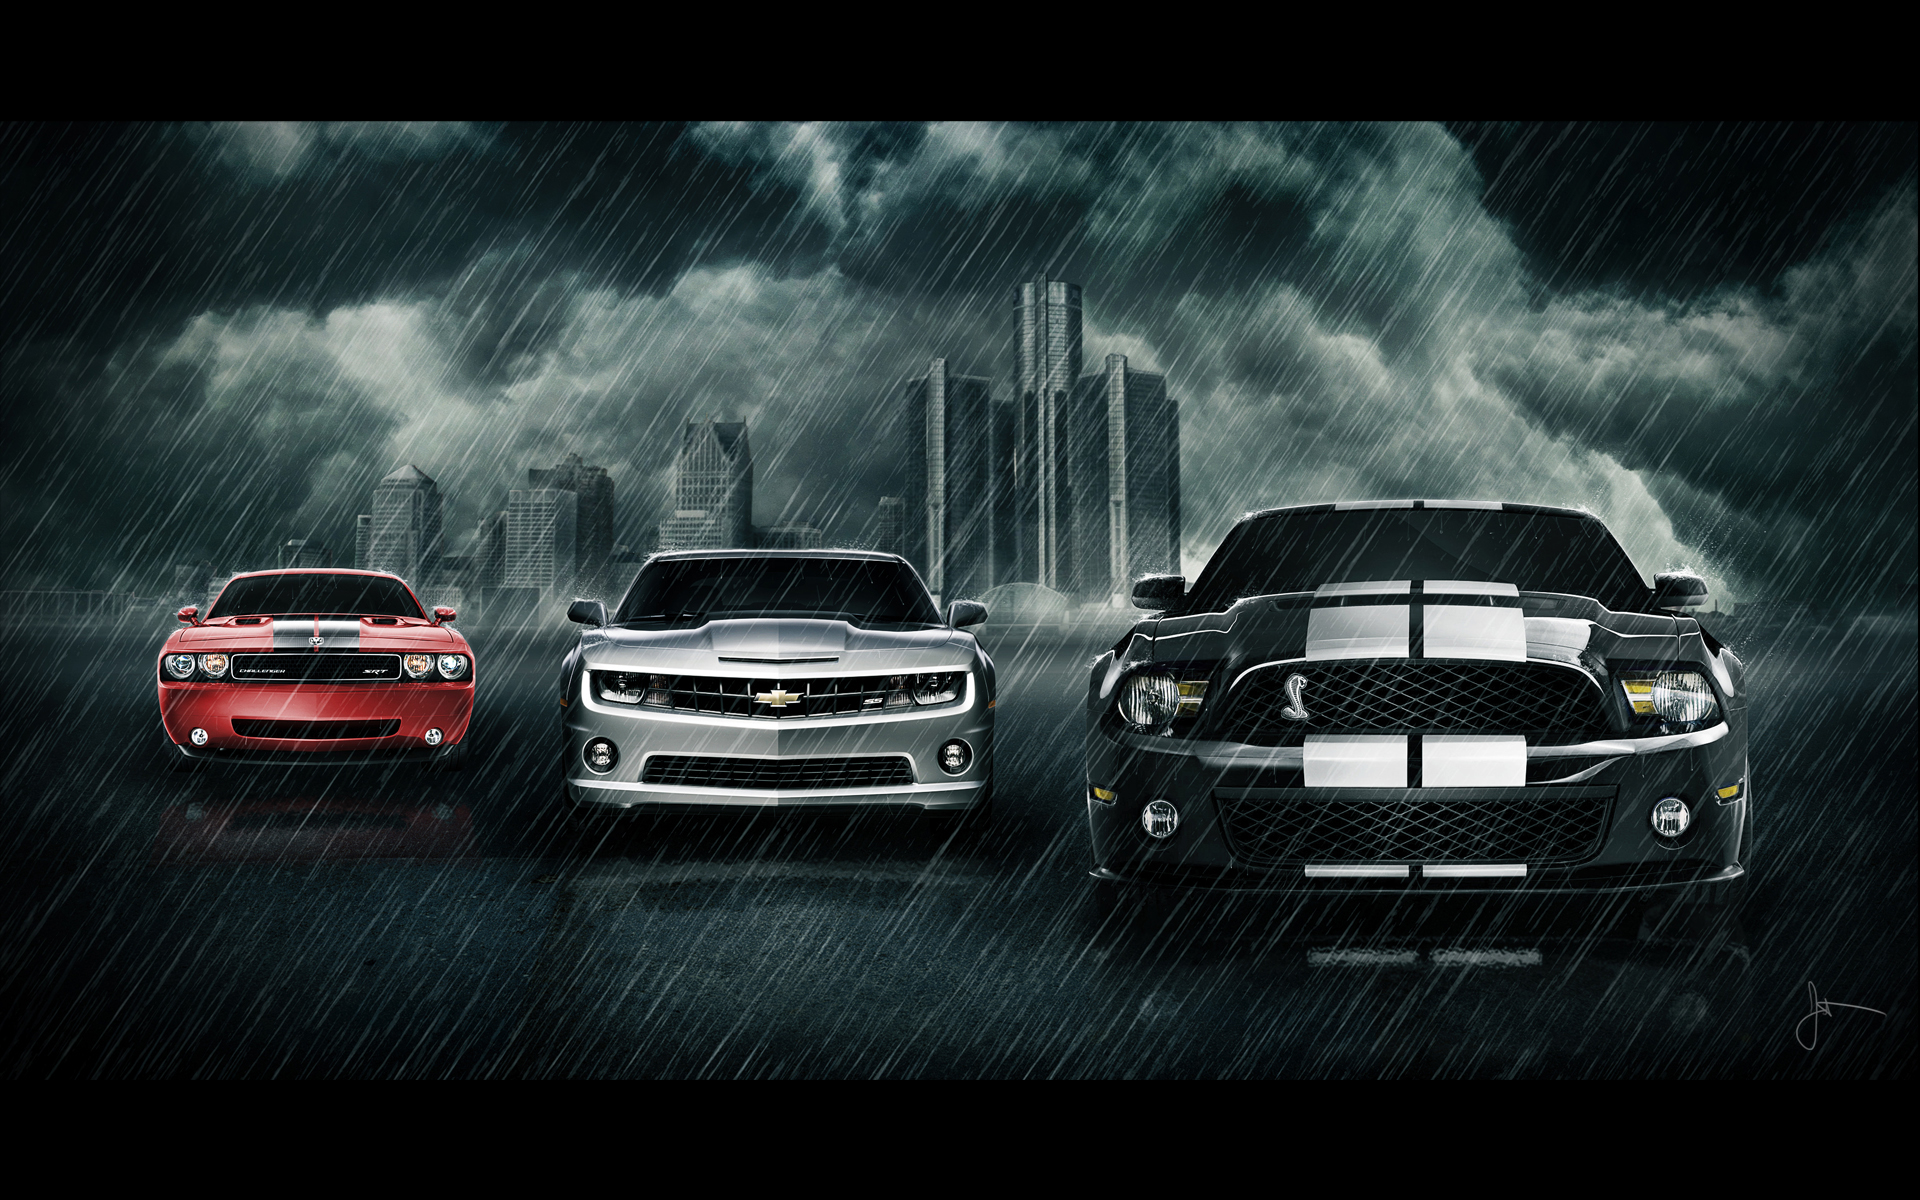 Vehicles - Car Wallpaper